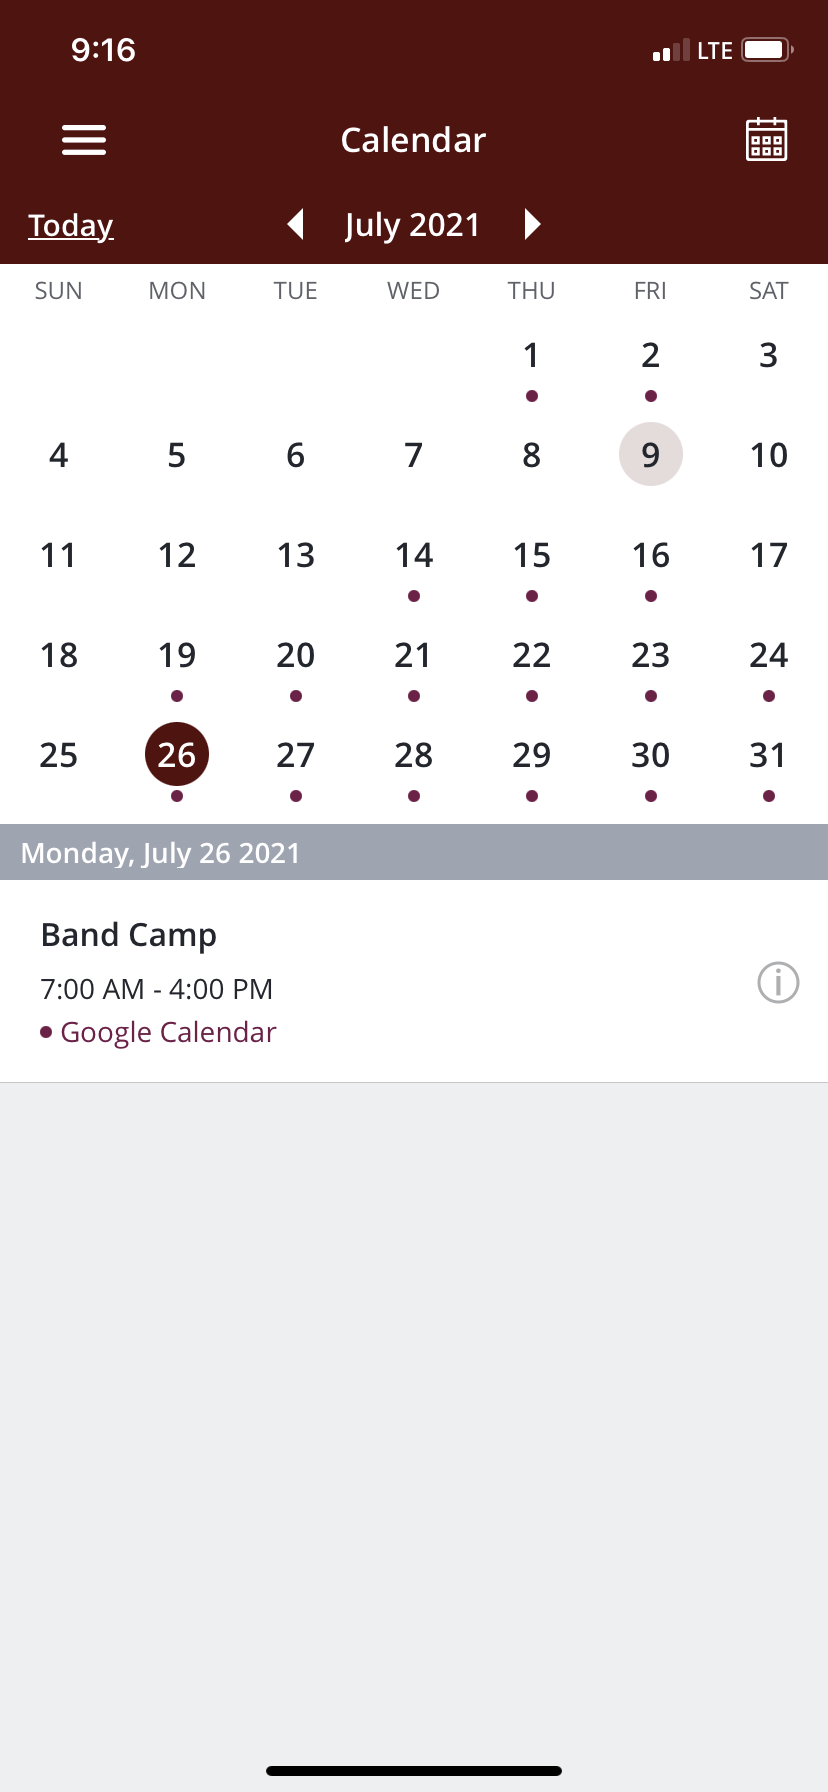 View the band calendar